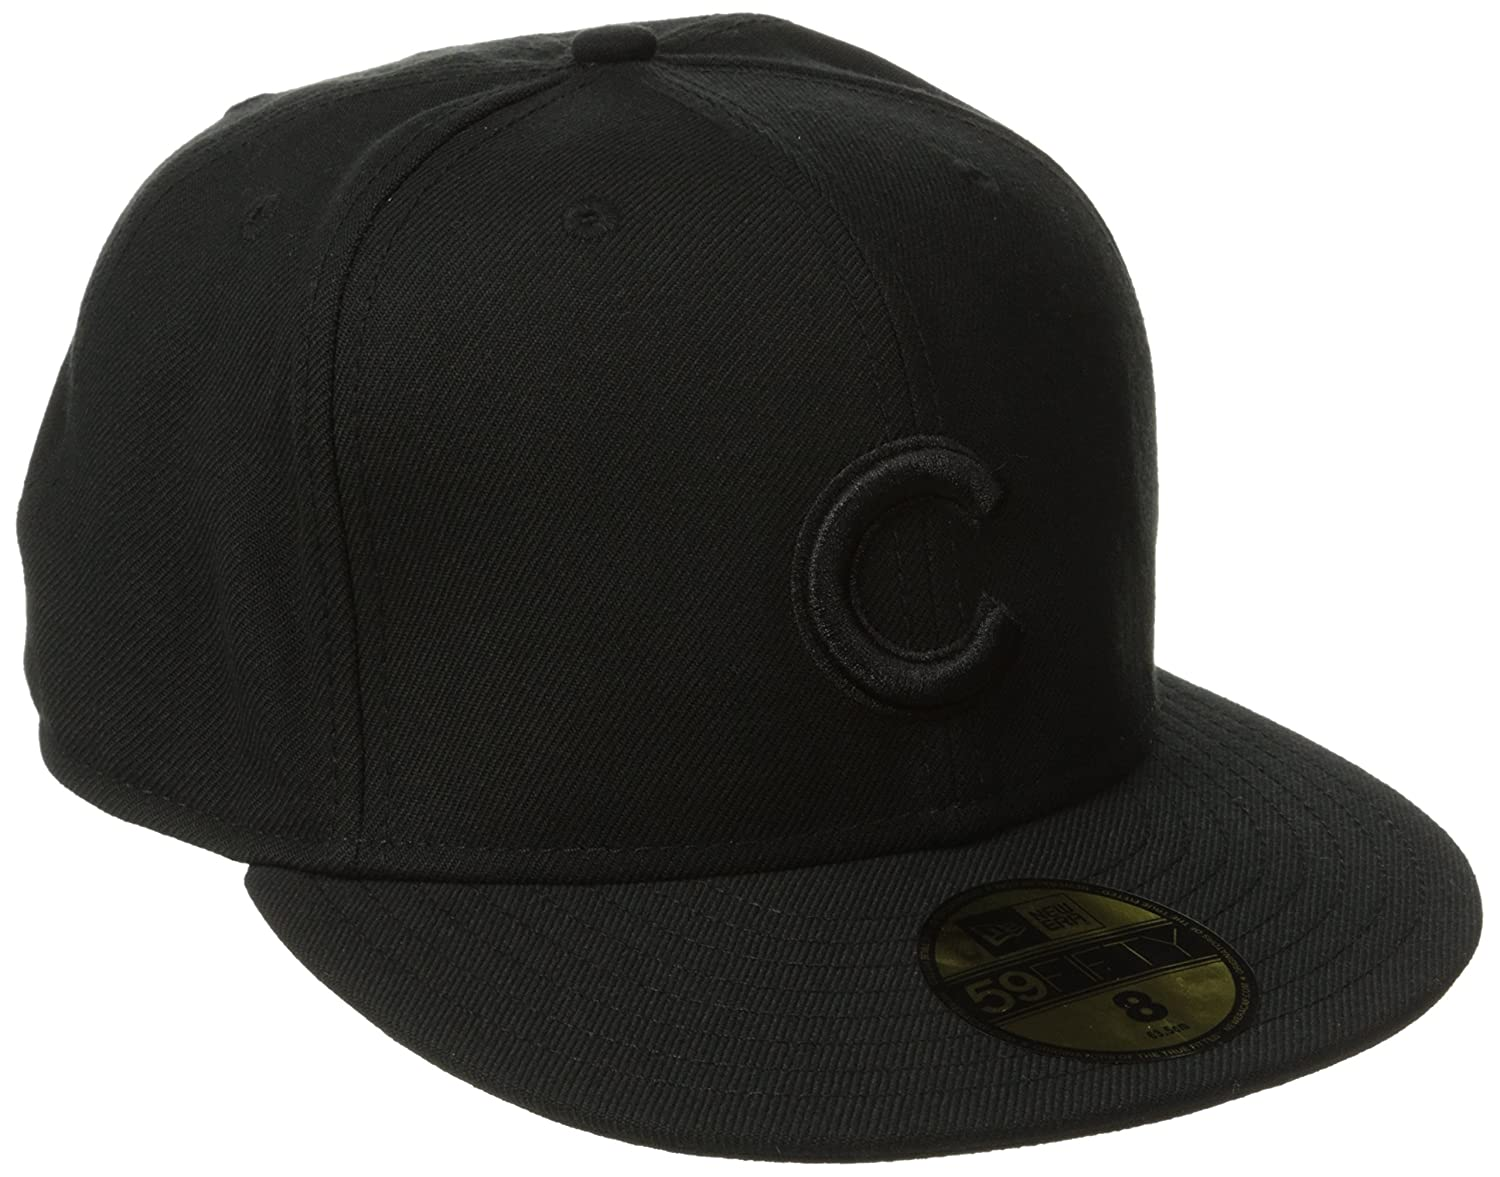 Amazon.com   New Era Chicago Cubs 59FIFTY Black on Black Fitted Hat    Sports   Outdoors 4b41b40587f3